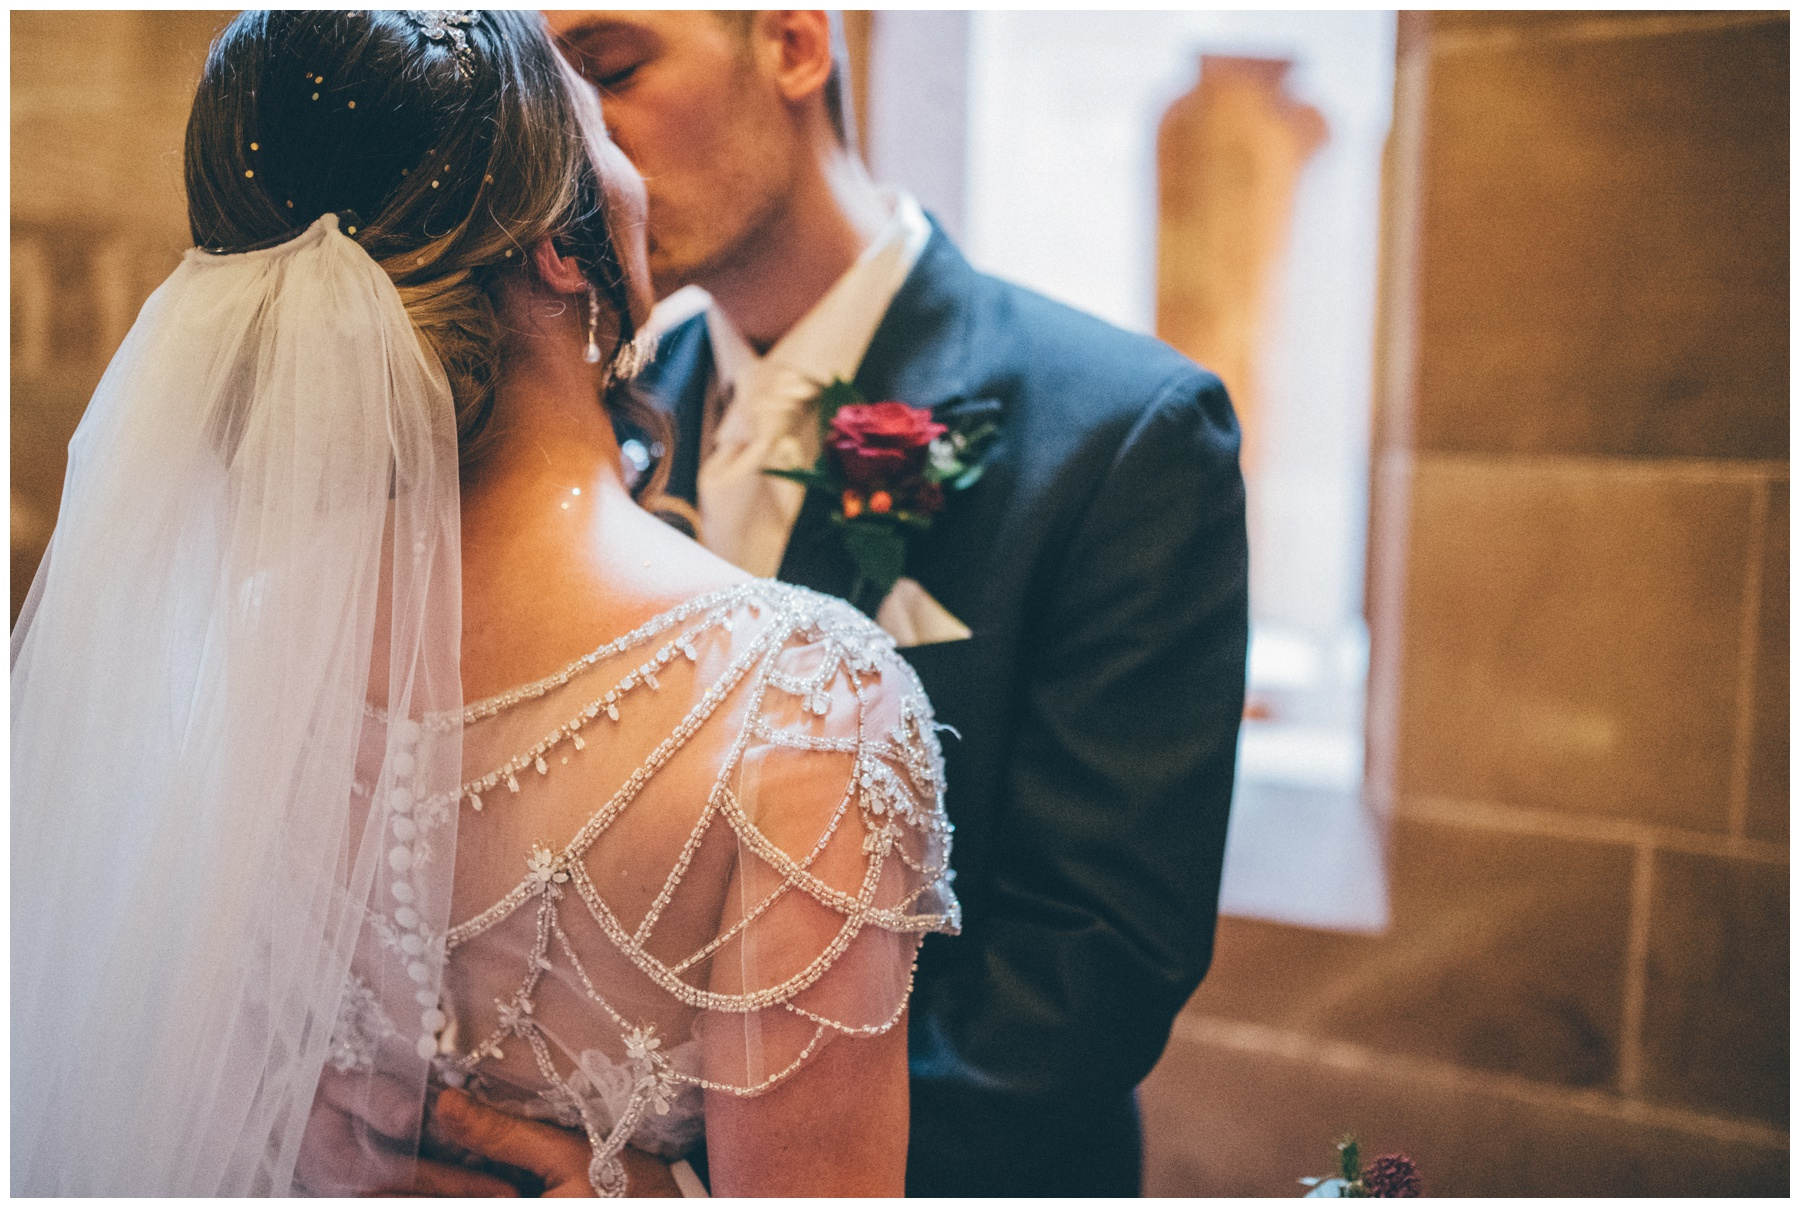 Details of brides beaded wedding gown as she kisses her groom at Peckforton Castle in Cheshire.